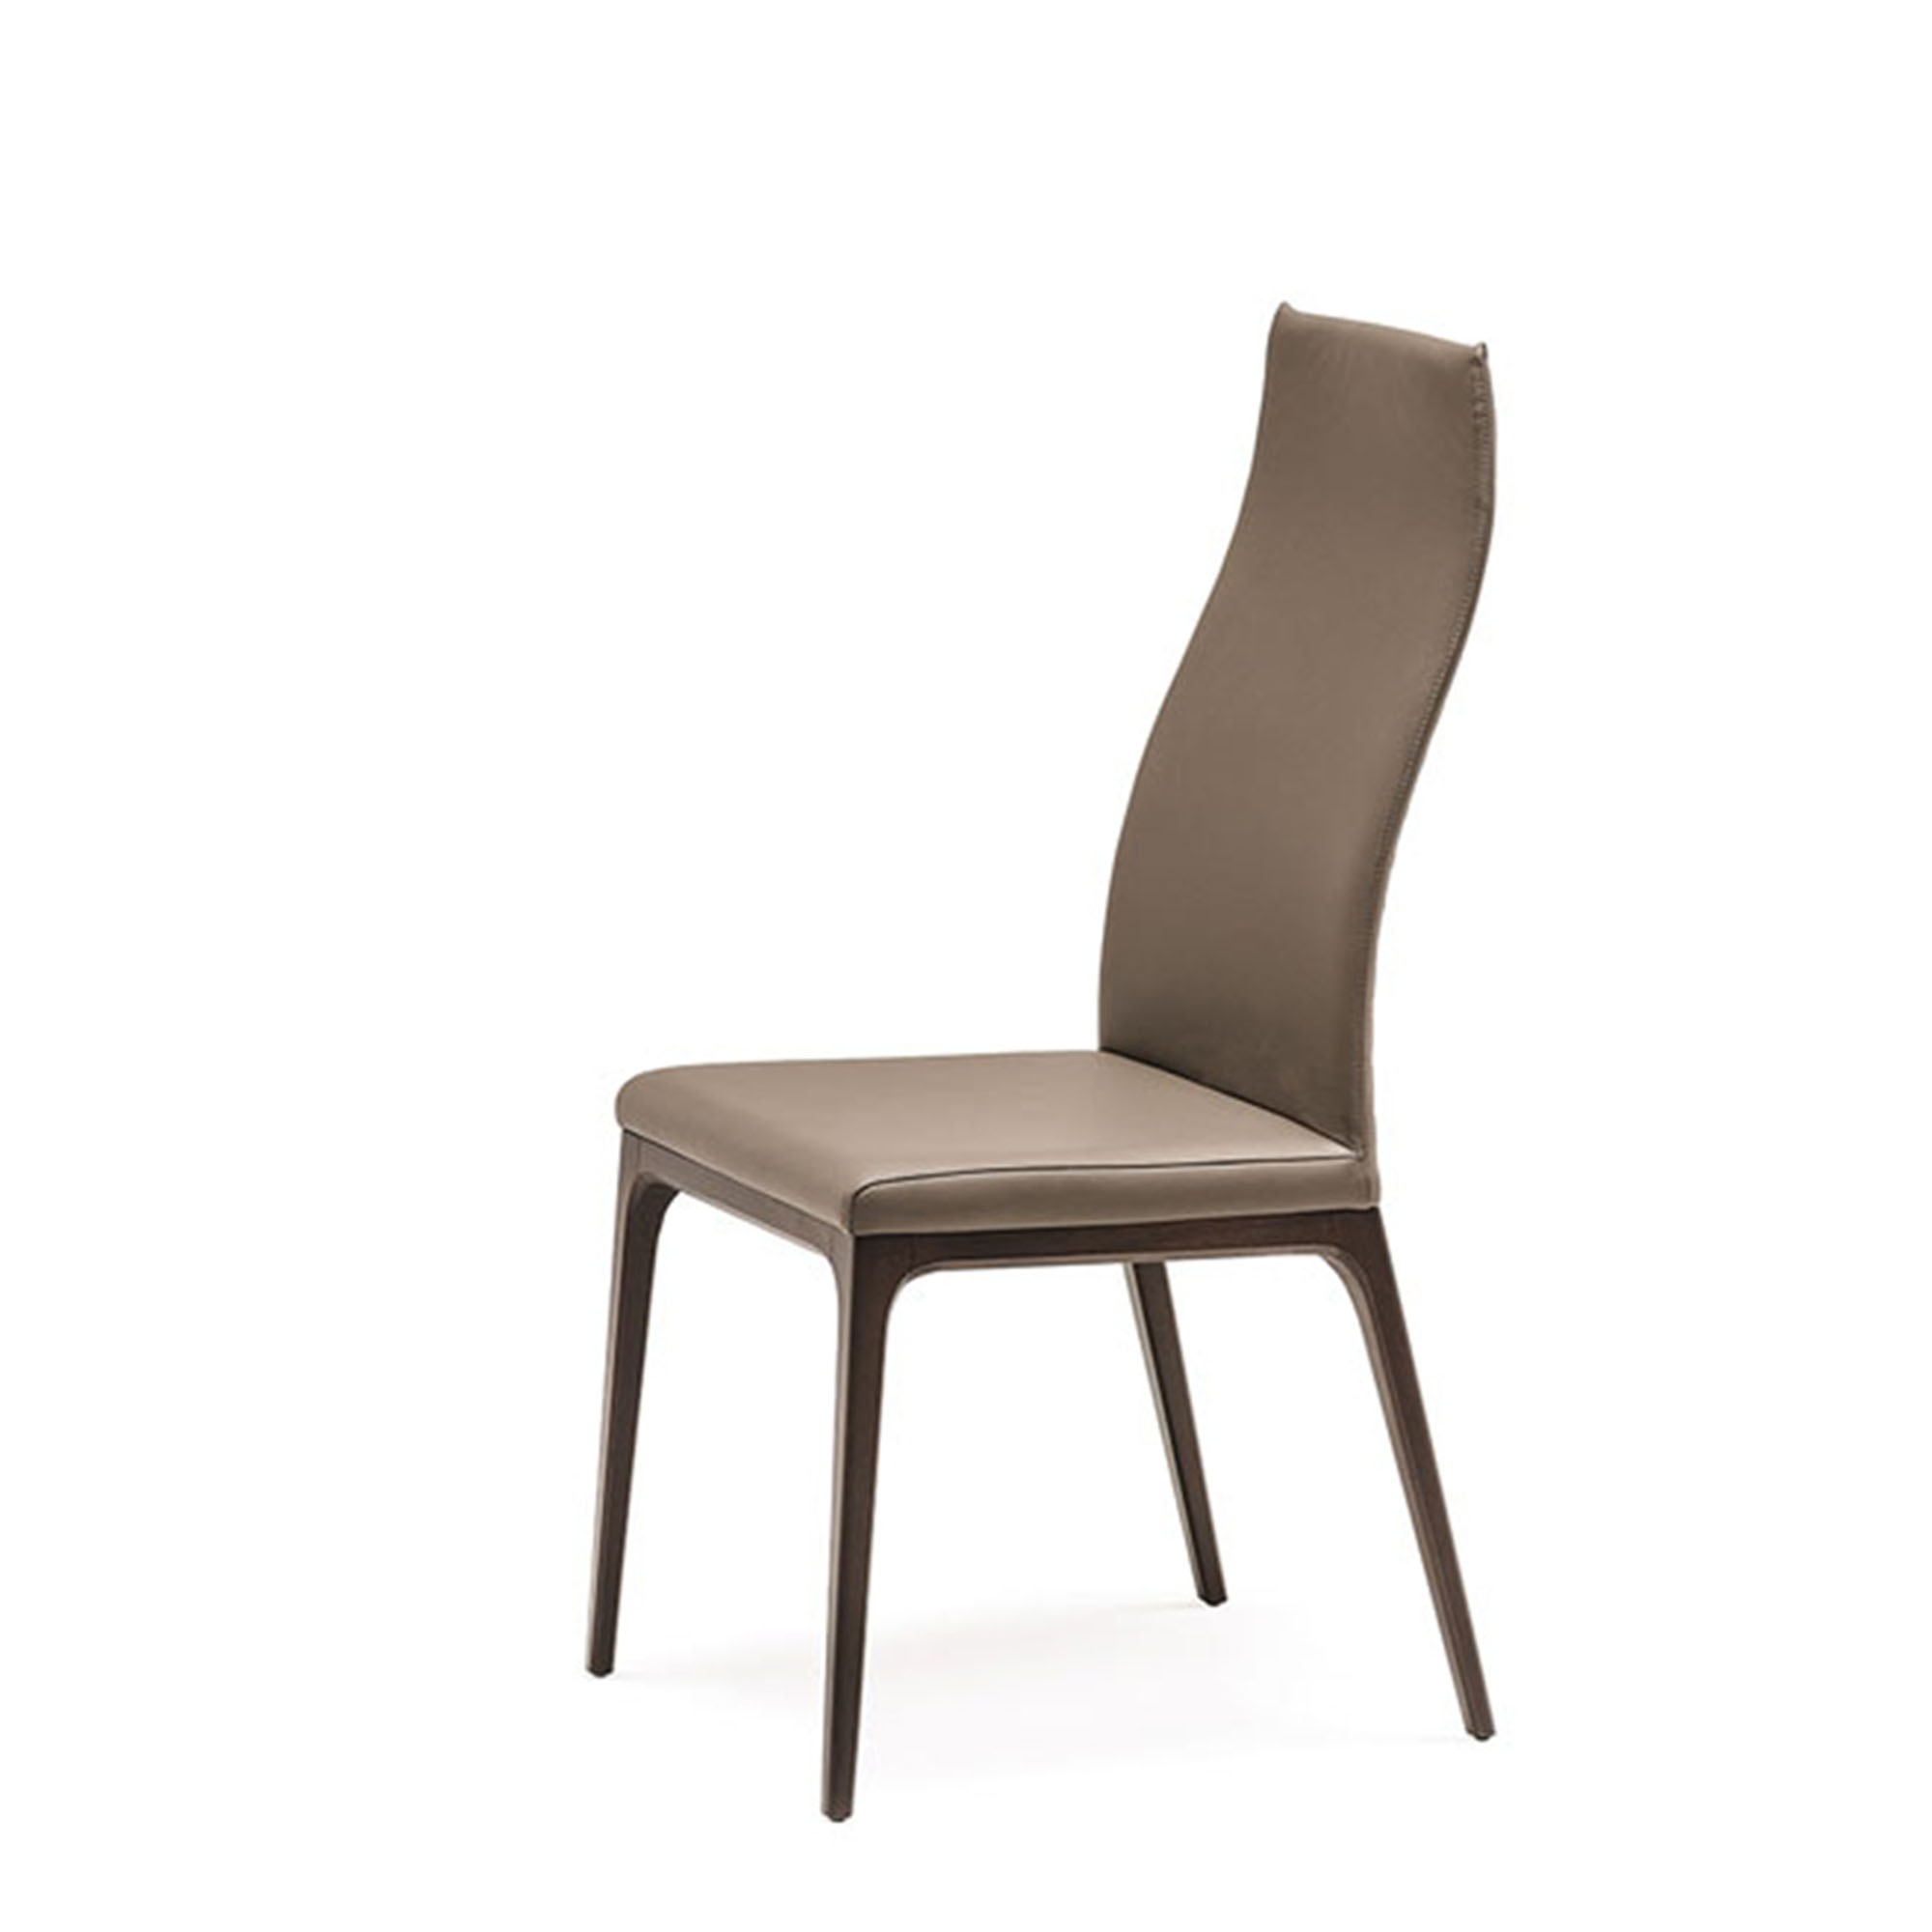 Cattelan Italia Chairs Cattelan Italia Arcadia Couture H Dining Chair Dining Chairs Fishpools